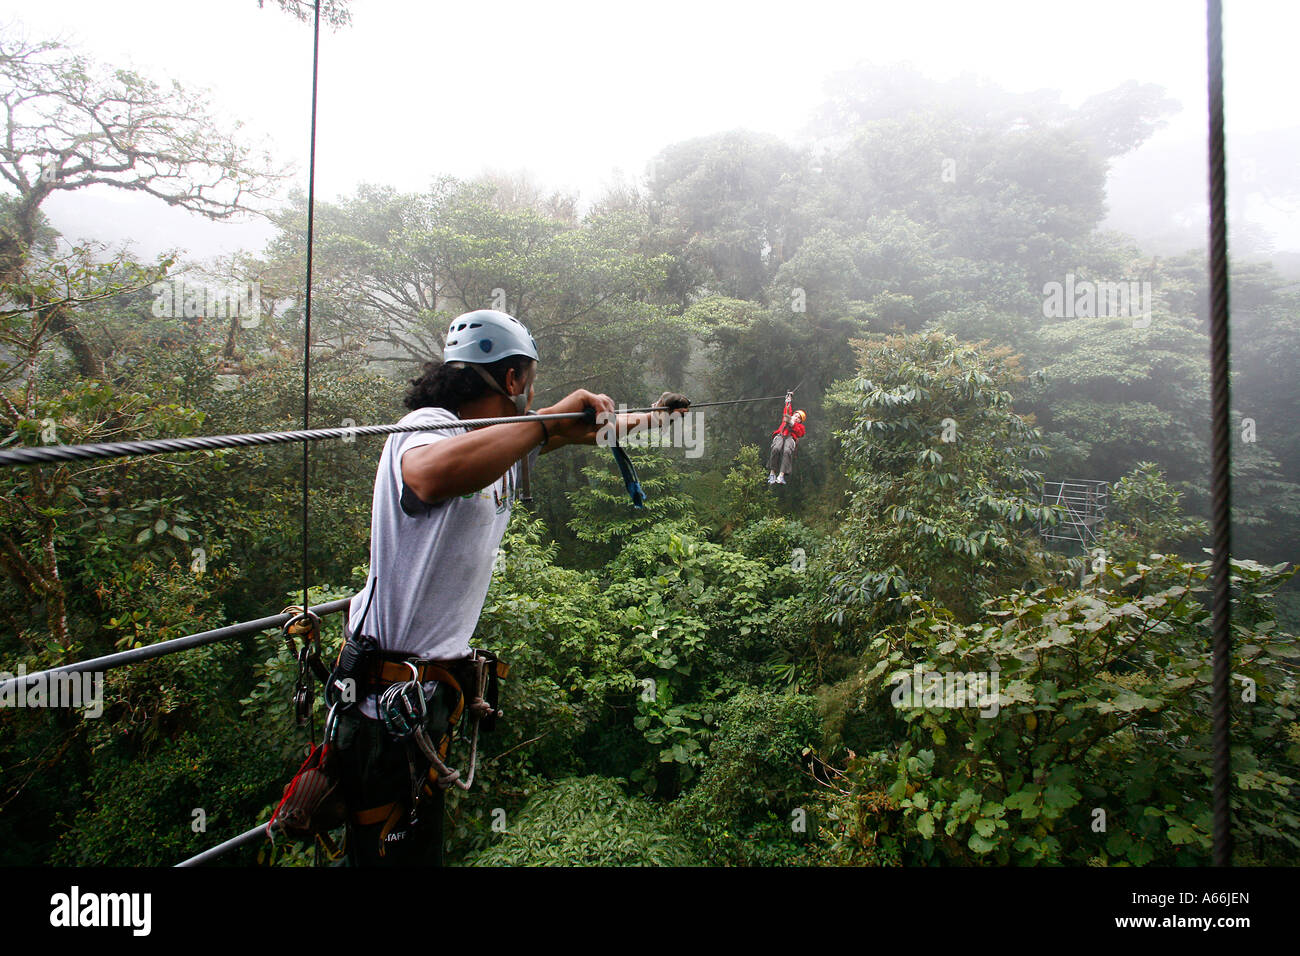 Canopy cable ride at Monteverde cloud forest Costa Rica - Stock Image